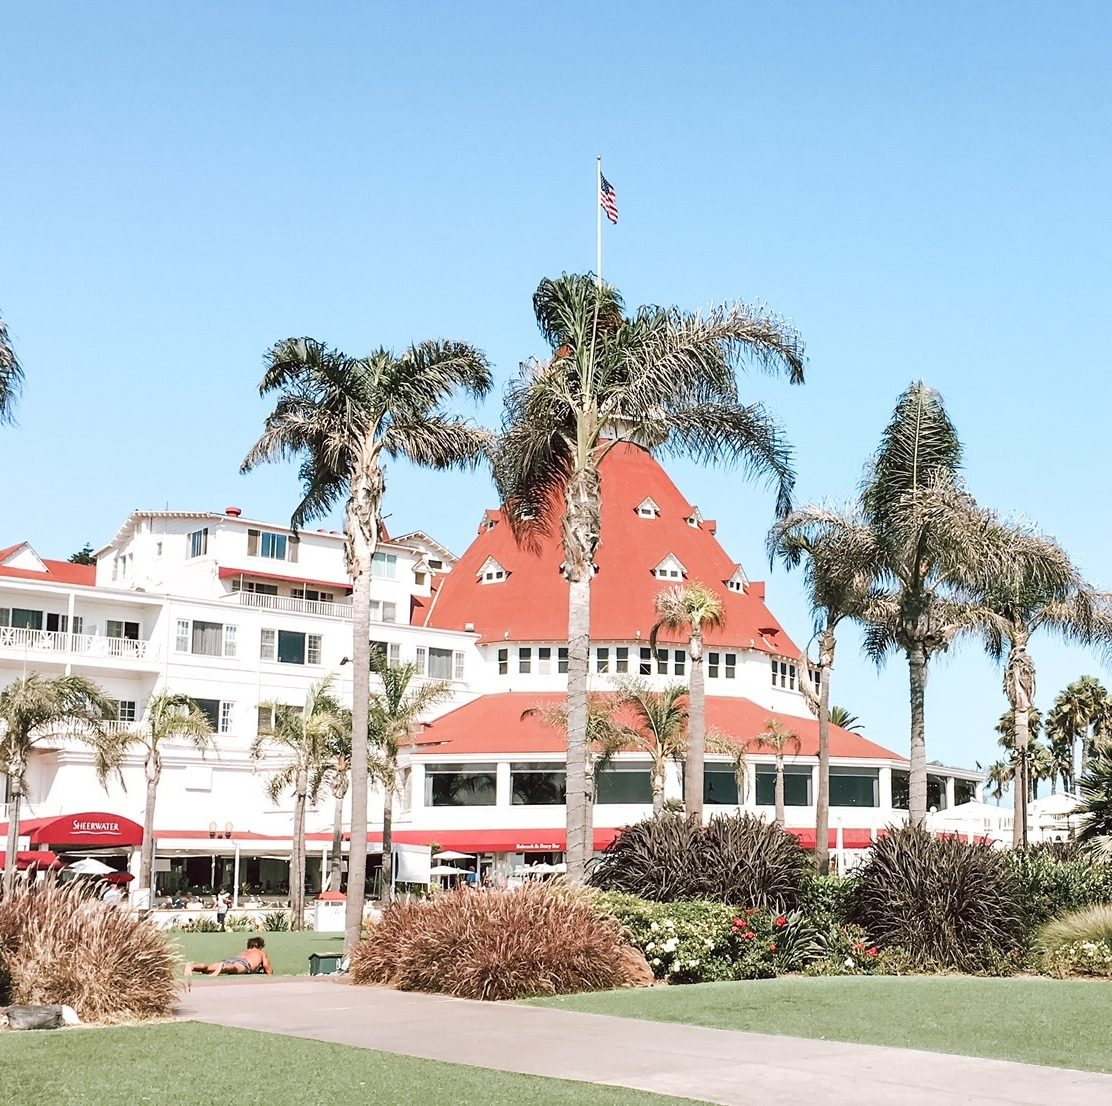 The Hotel Del provides a touch of luxury for your girls' getaway in San Diego.